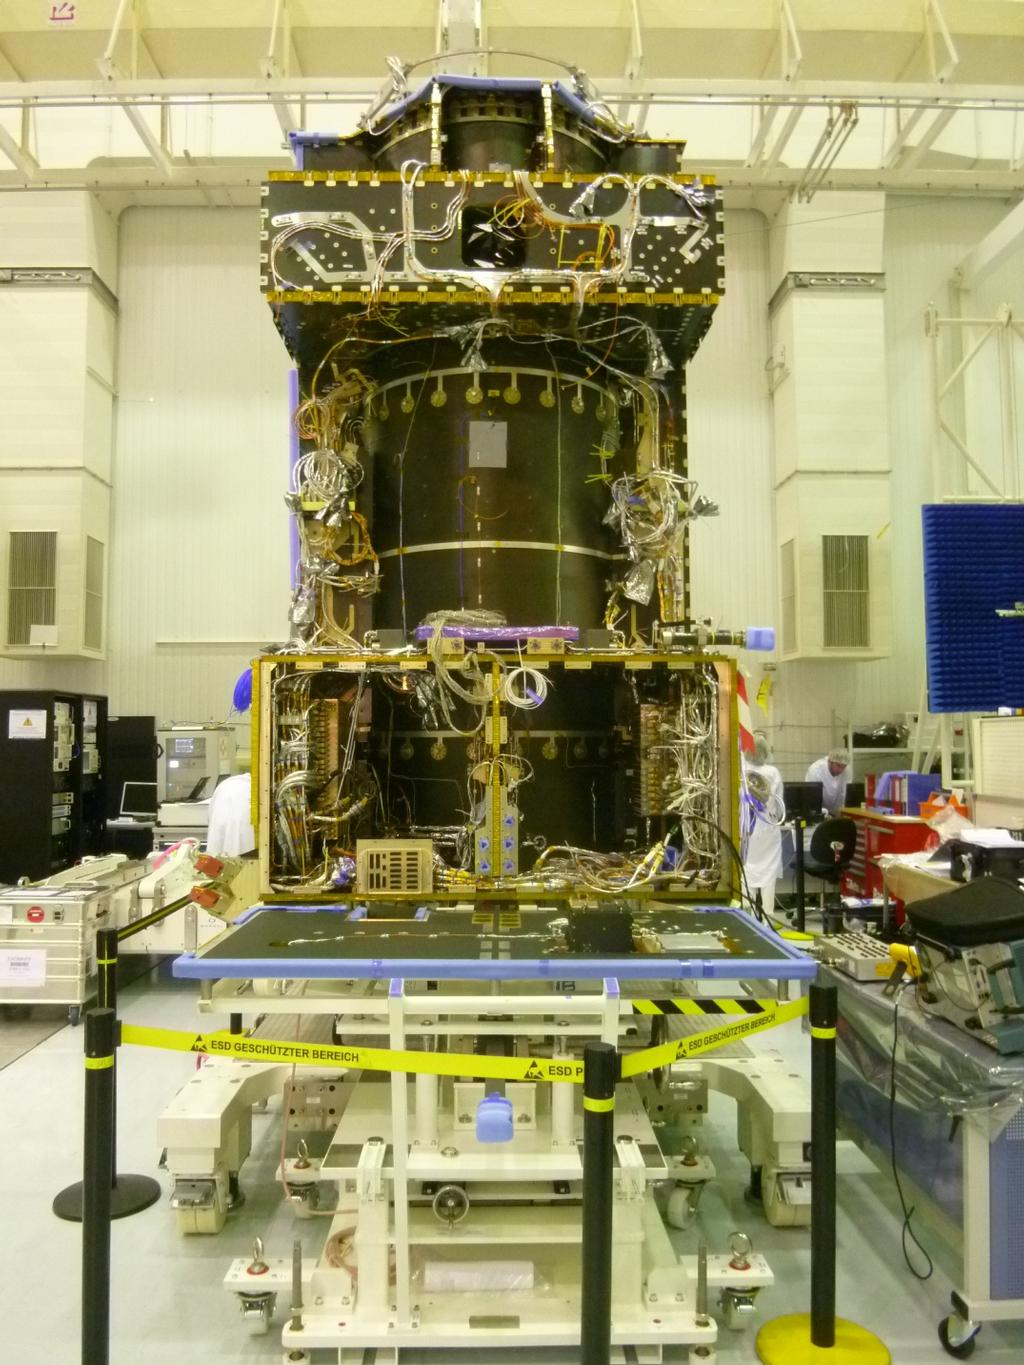 This June 2014 image from the clean room at Thales Alenia Space, in Cannes, France, shows ongoing assembly of the European Space Agency's ExoMars Trace Gas Orbiter, including the first of the orbiter's two Electra UHF relay radios provided by NASA.